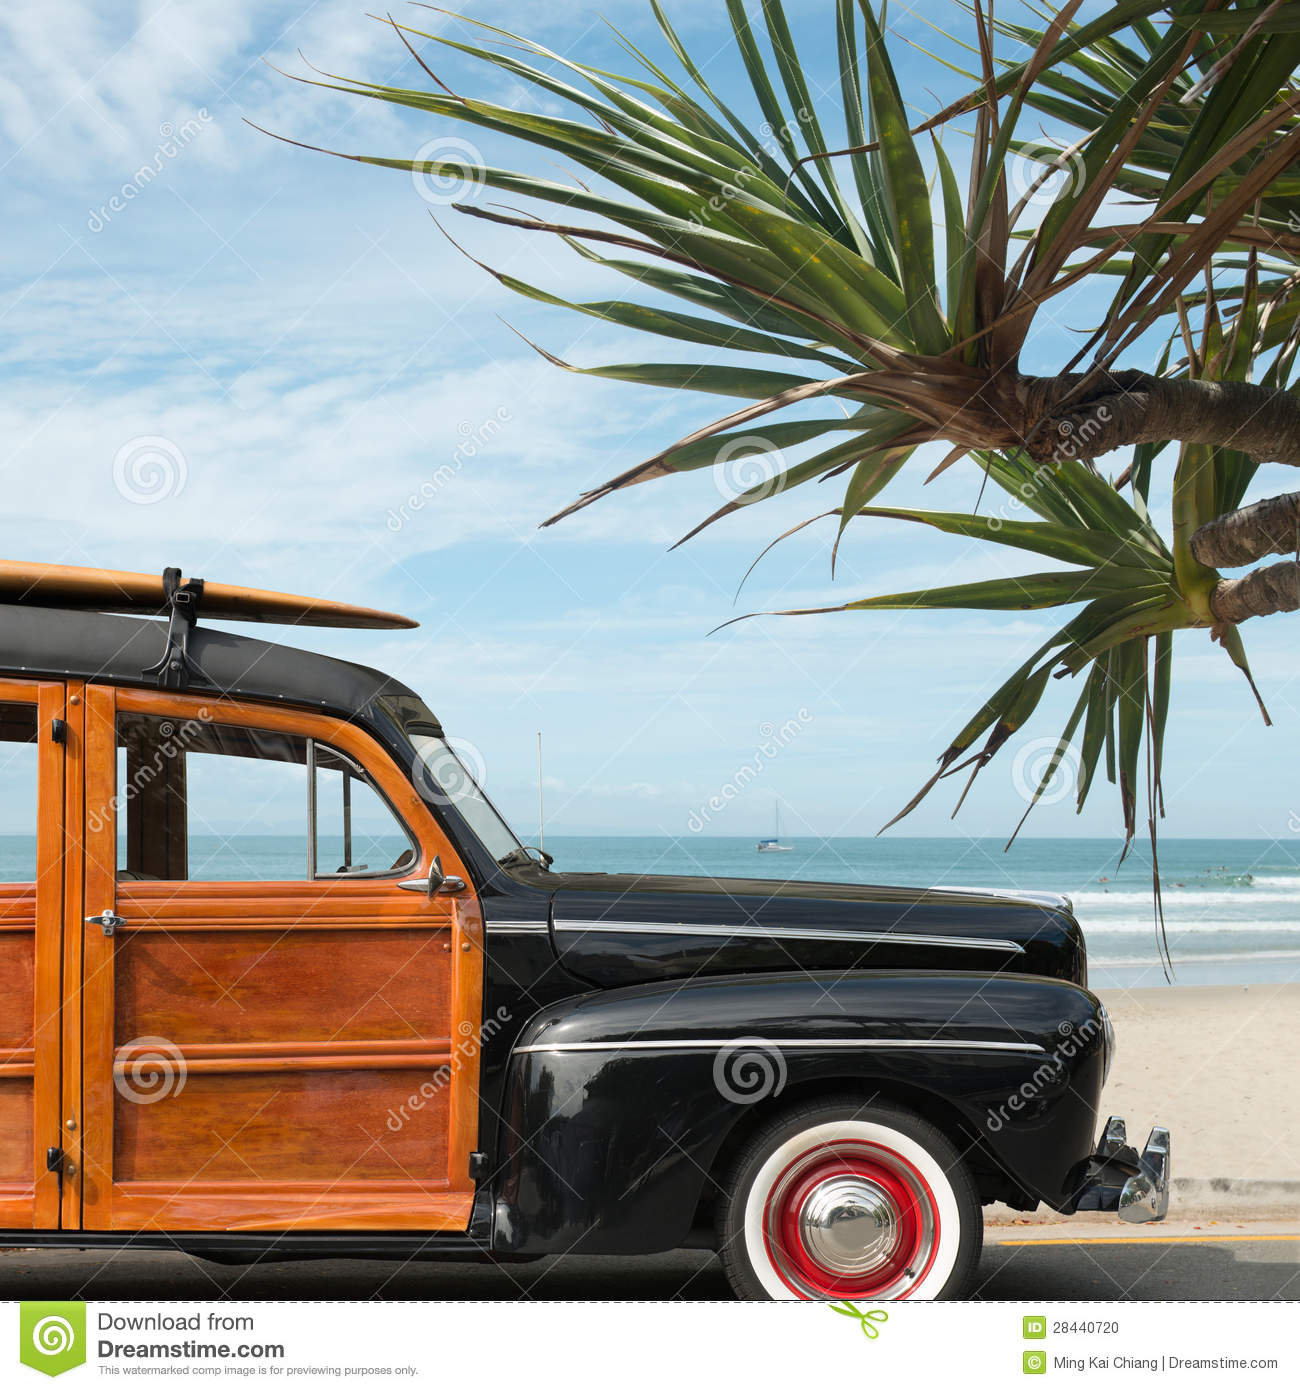 Woody Wagon Stock Photos Royalty Free Pictures 1941 Plymouth Station Surfer On Beach Photo